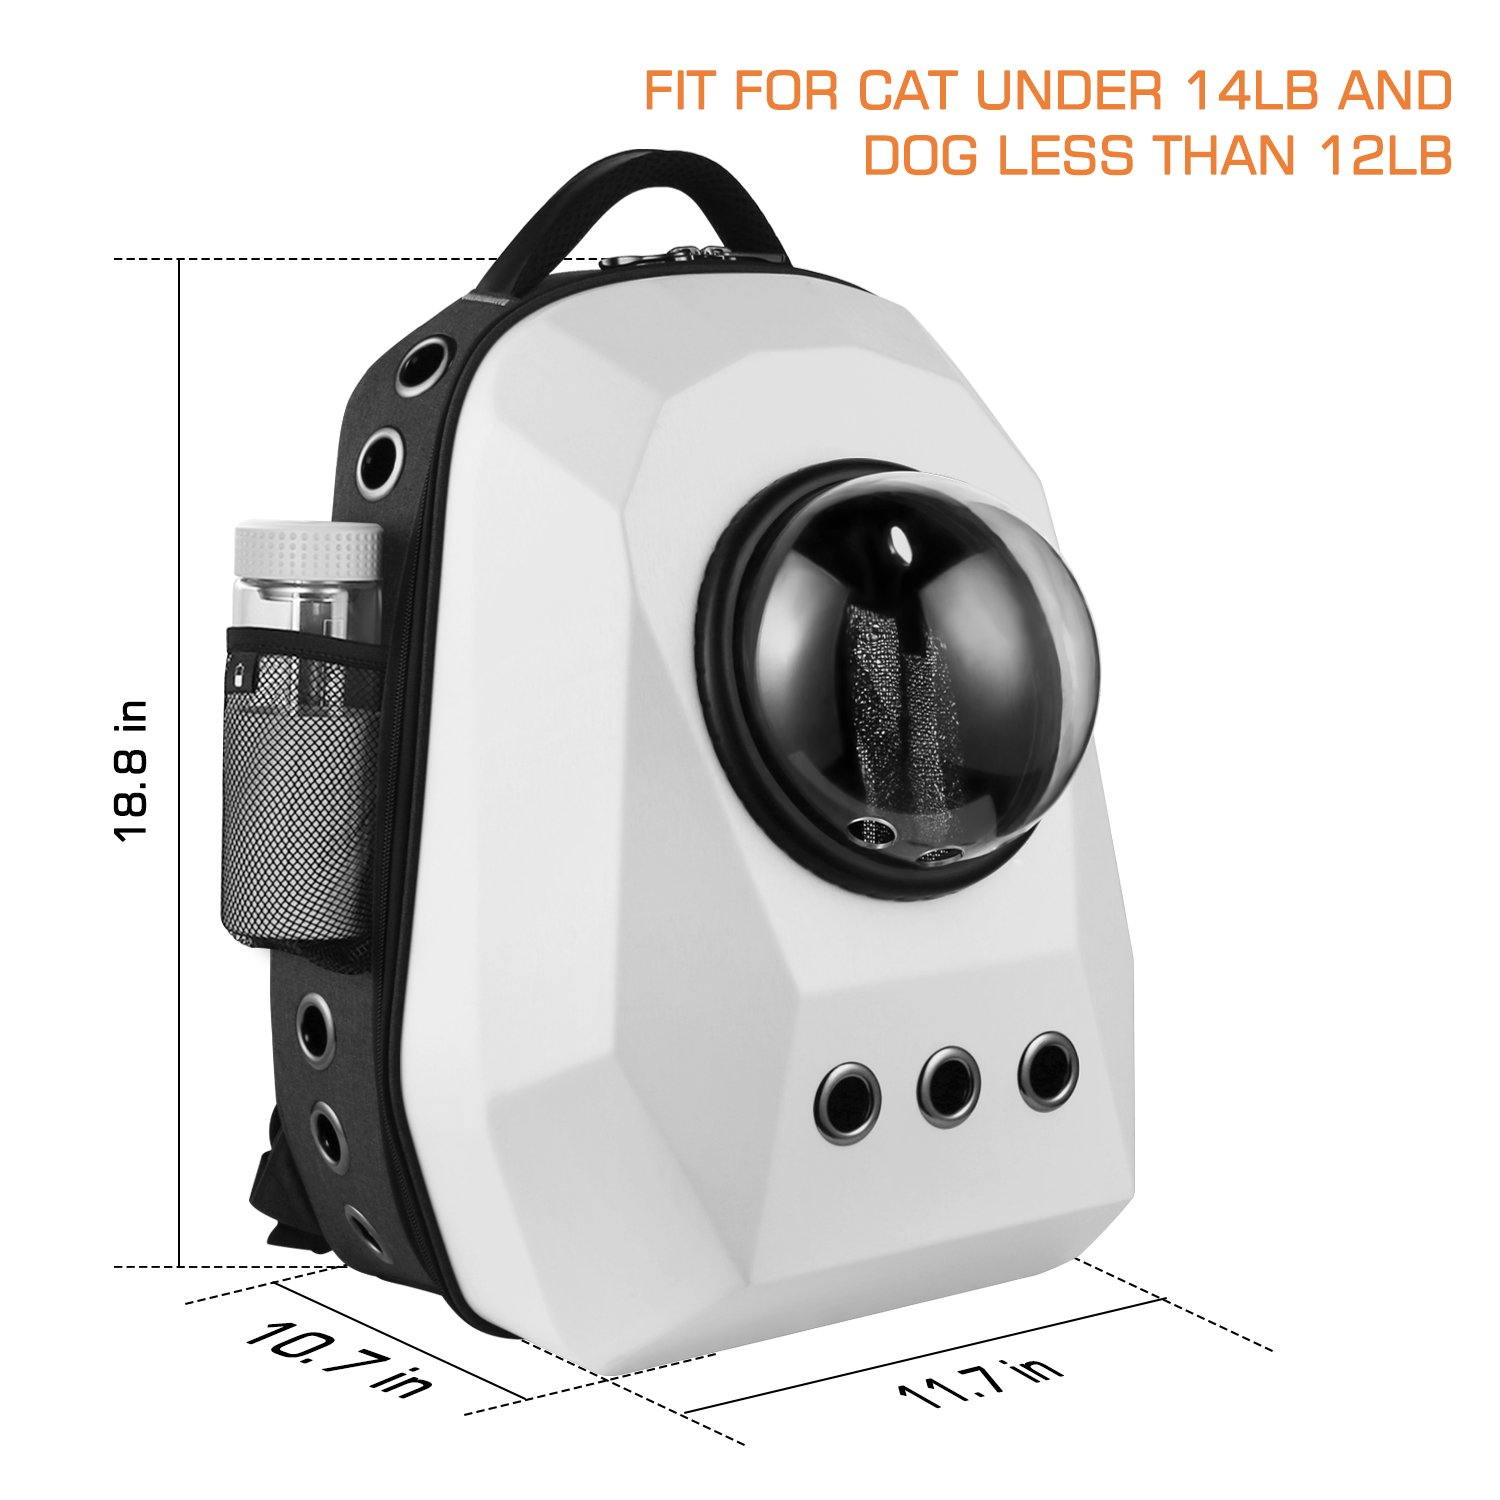 Anzone Large Capacity Diamond Space Capsule Pet Carrier Backpack with Three Replaceable Windows, 15 Air Vent Holes Outdoor or Traveler Waterproof Knapsack for Cats Dogs & Petite Animals-White